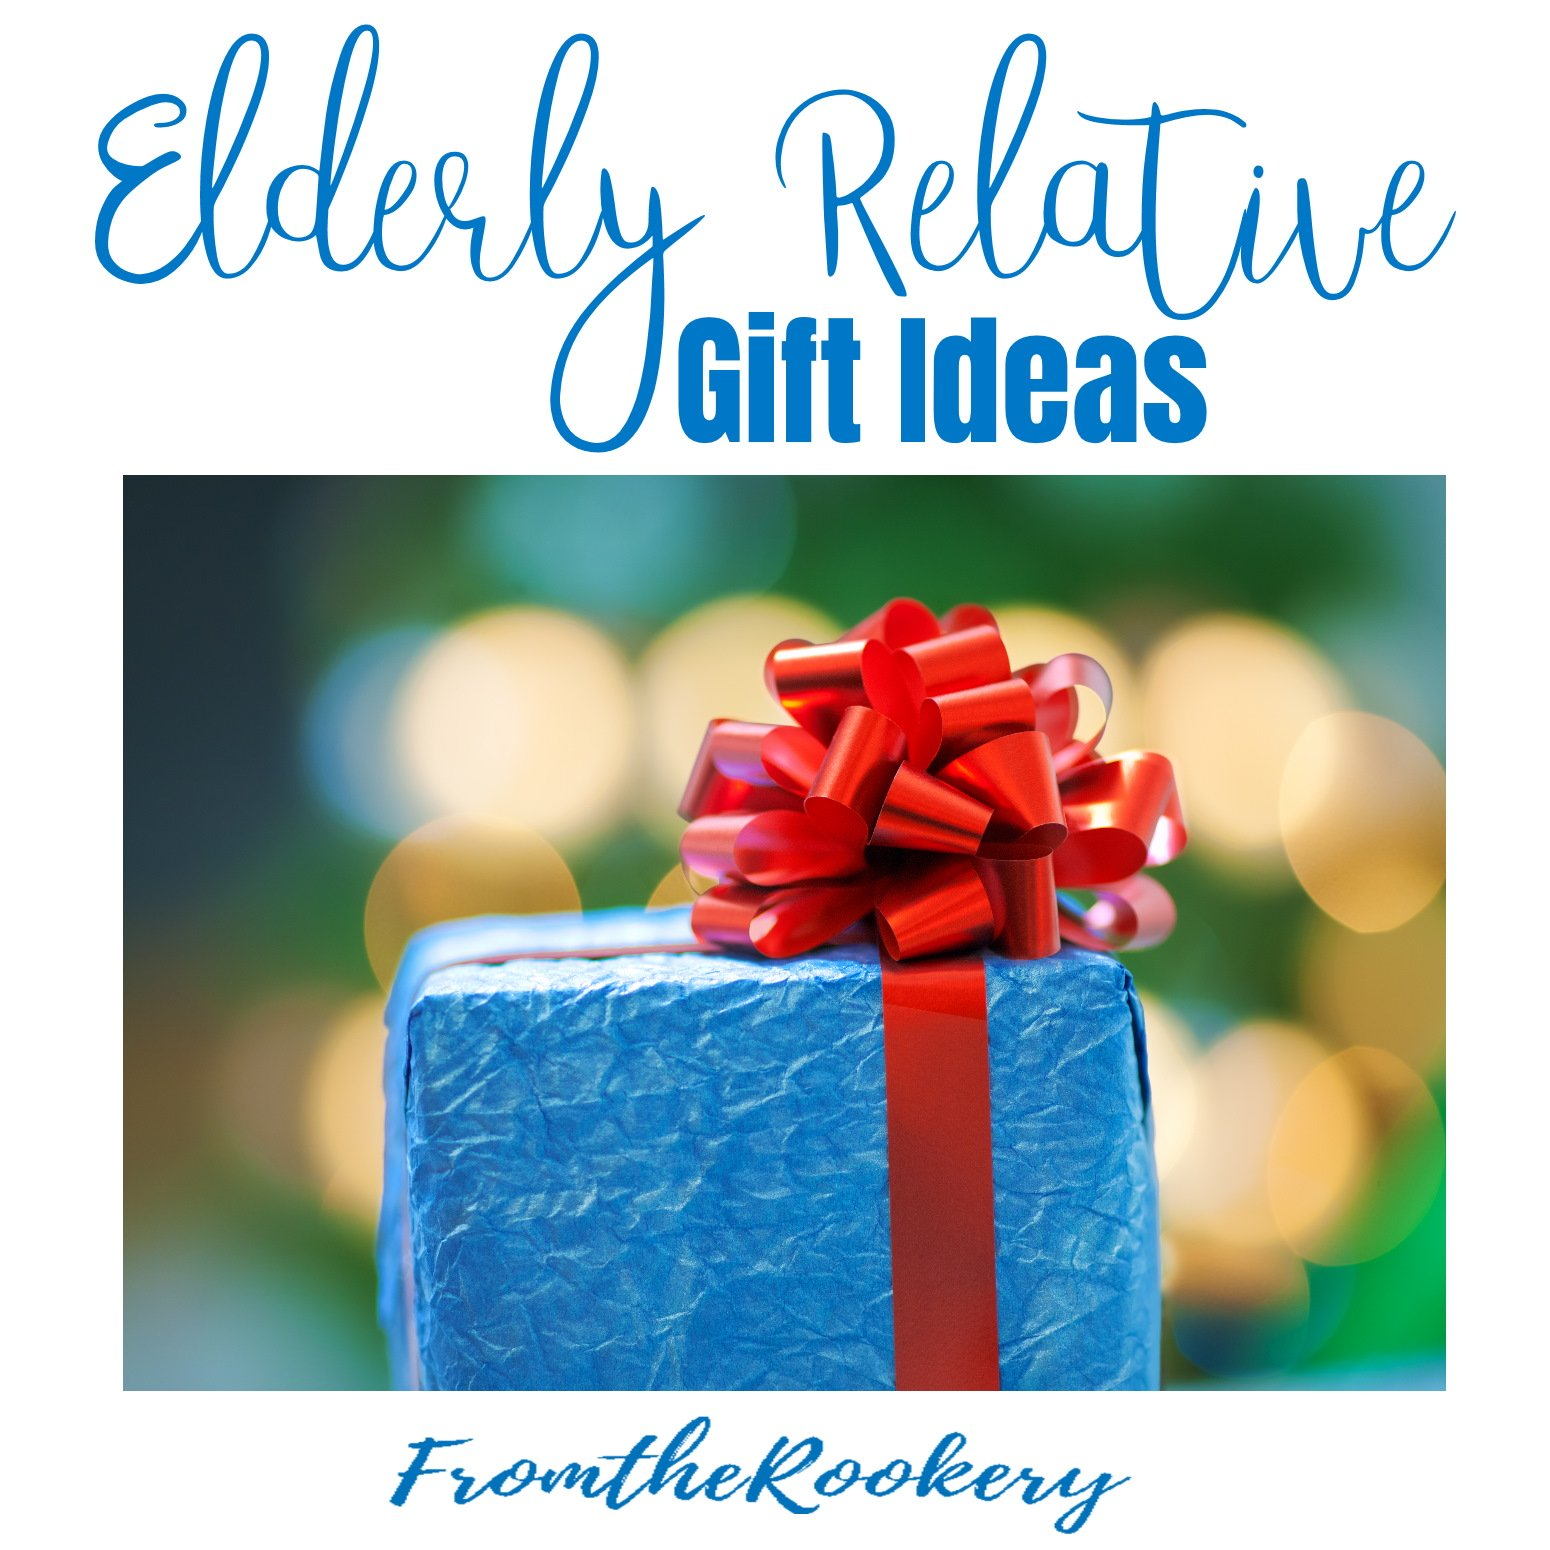 Elderly relative gift ideas